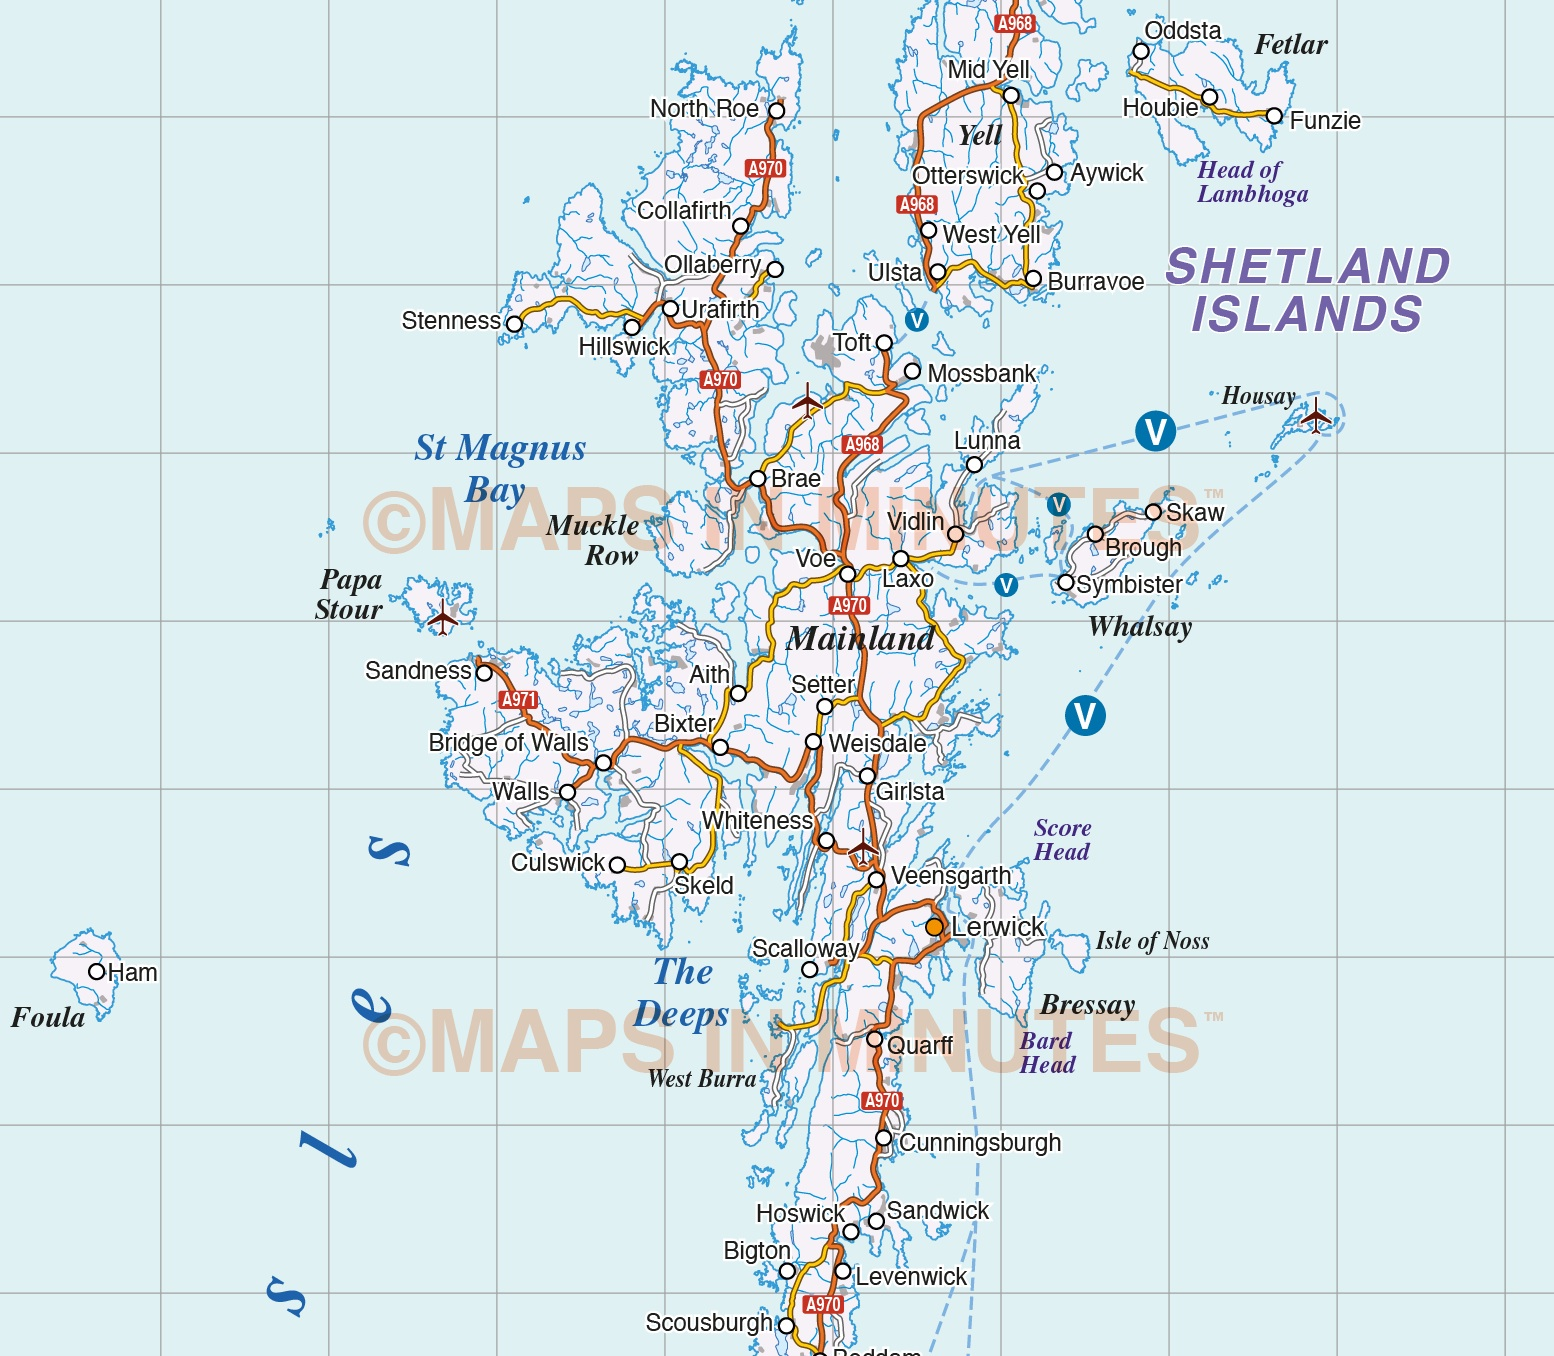 Vector Scotland map Regions Political Road Rail 500000 scale